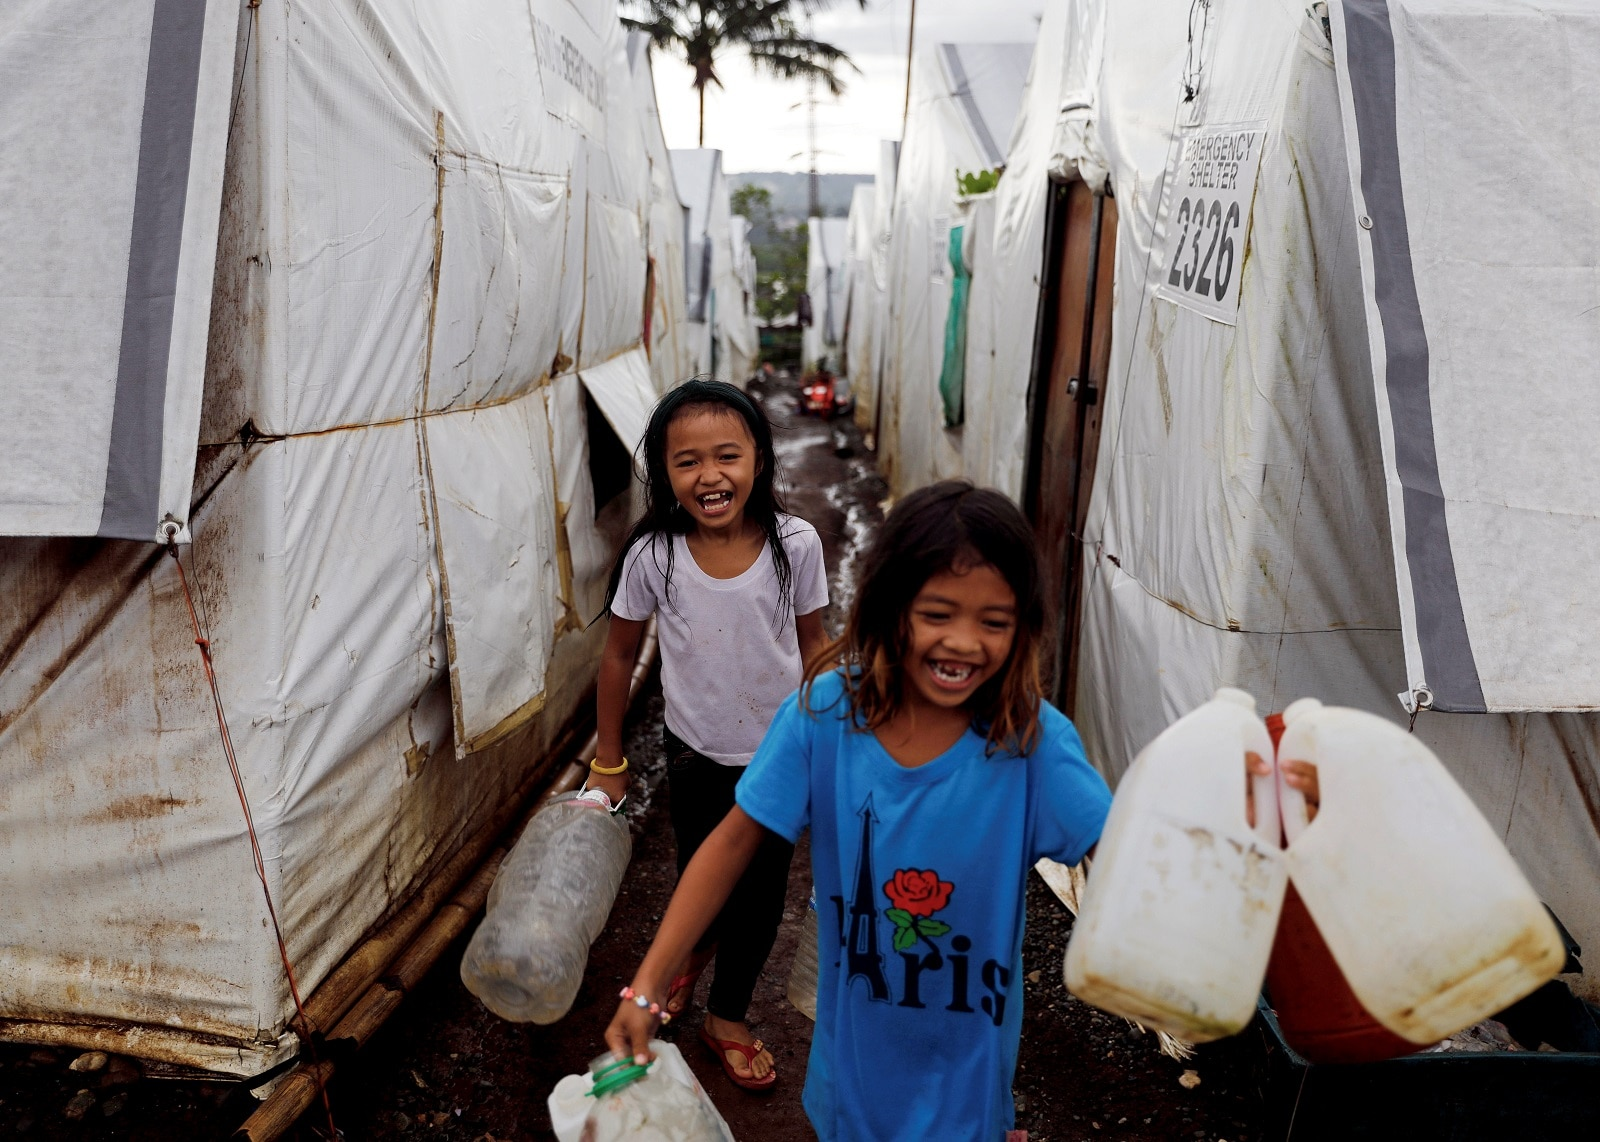 Girls carry water containers to be filled at an evacuation camp for families displaced by the Marawi siege, in Marawi City, Lanao del Sur province, Philippines, May 14, 2019. REUTERS/Eloisa Lopez